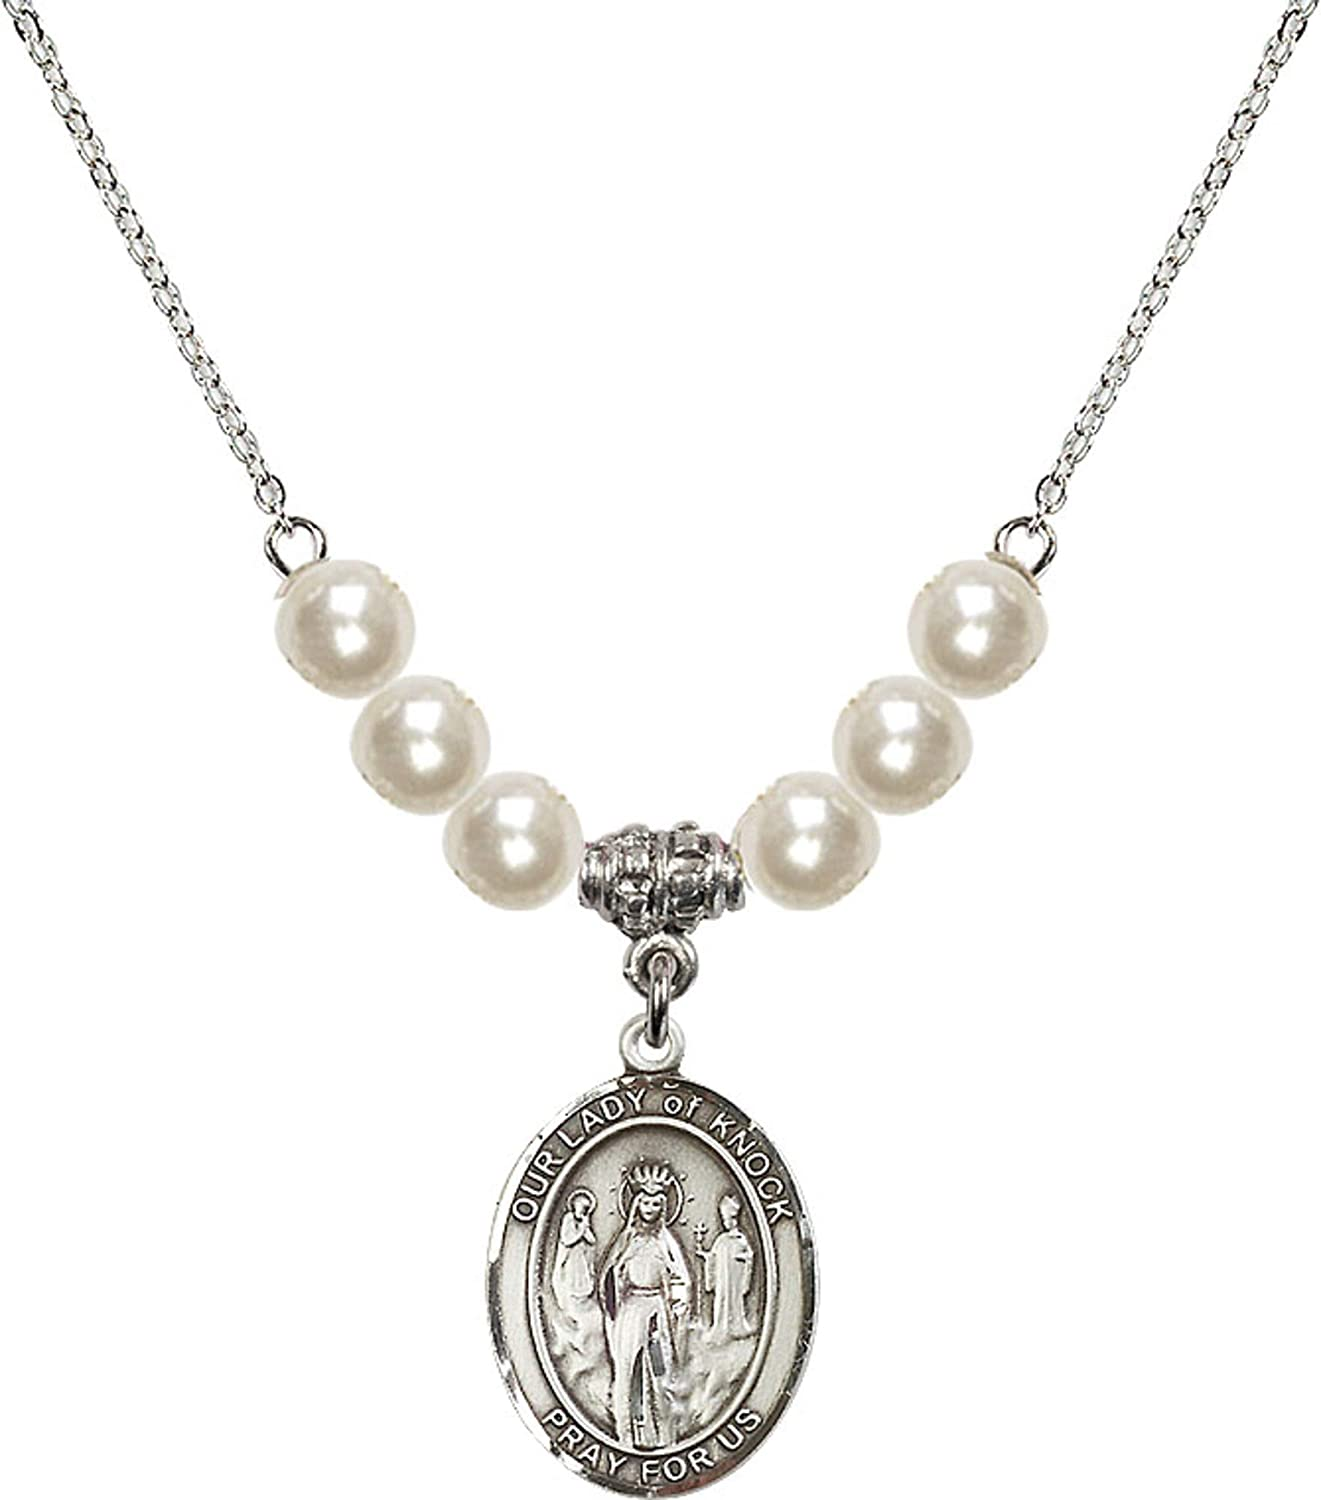 Bonyak Jewelry 18 Inch Rhodium Plated Necklace w// 6mm Faux-Pearl Beads and Our Lady of Knock Charm